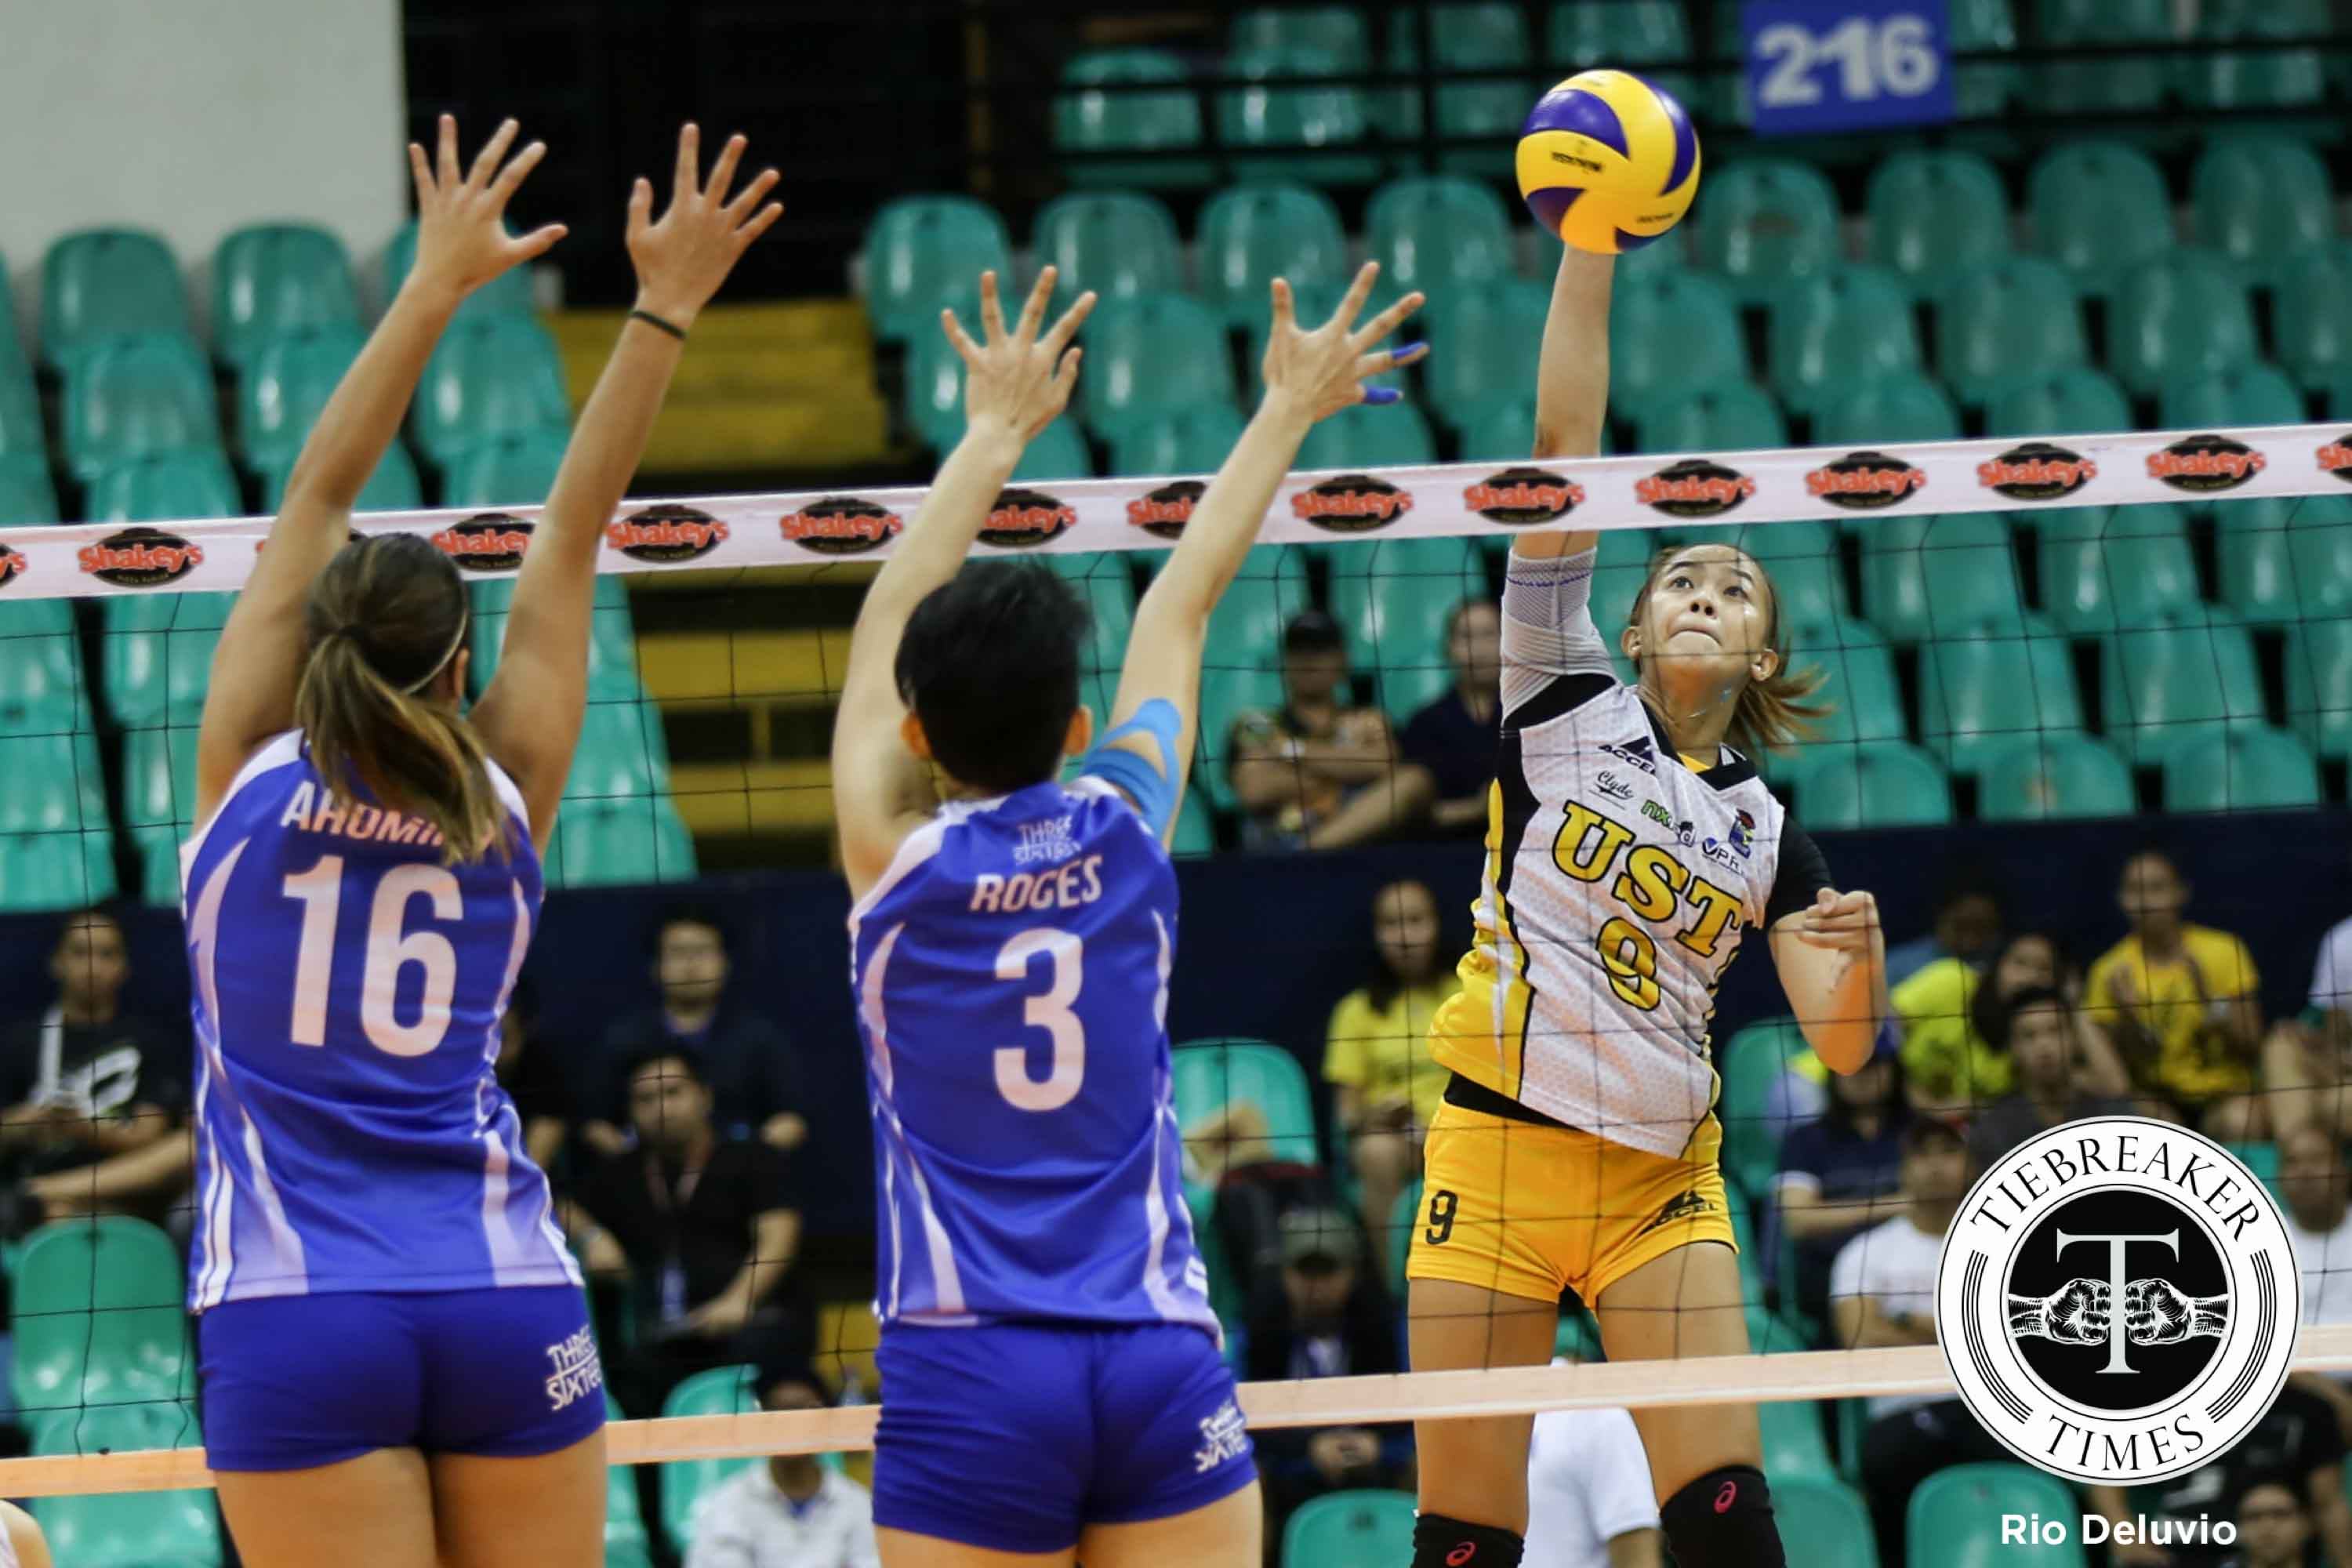 Tiebreaker Times Laure sees more energetic Tigresses heading into semis News PVL UST Volleyball  UST Women's Volleyball EJ Laure 2016 SVL Season 2016 SVL Reinforced Conference